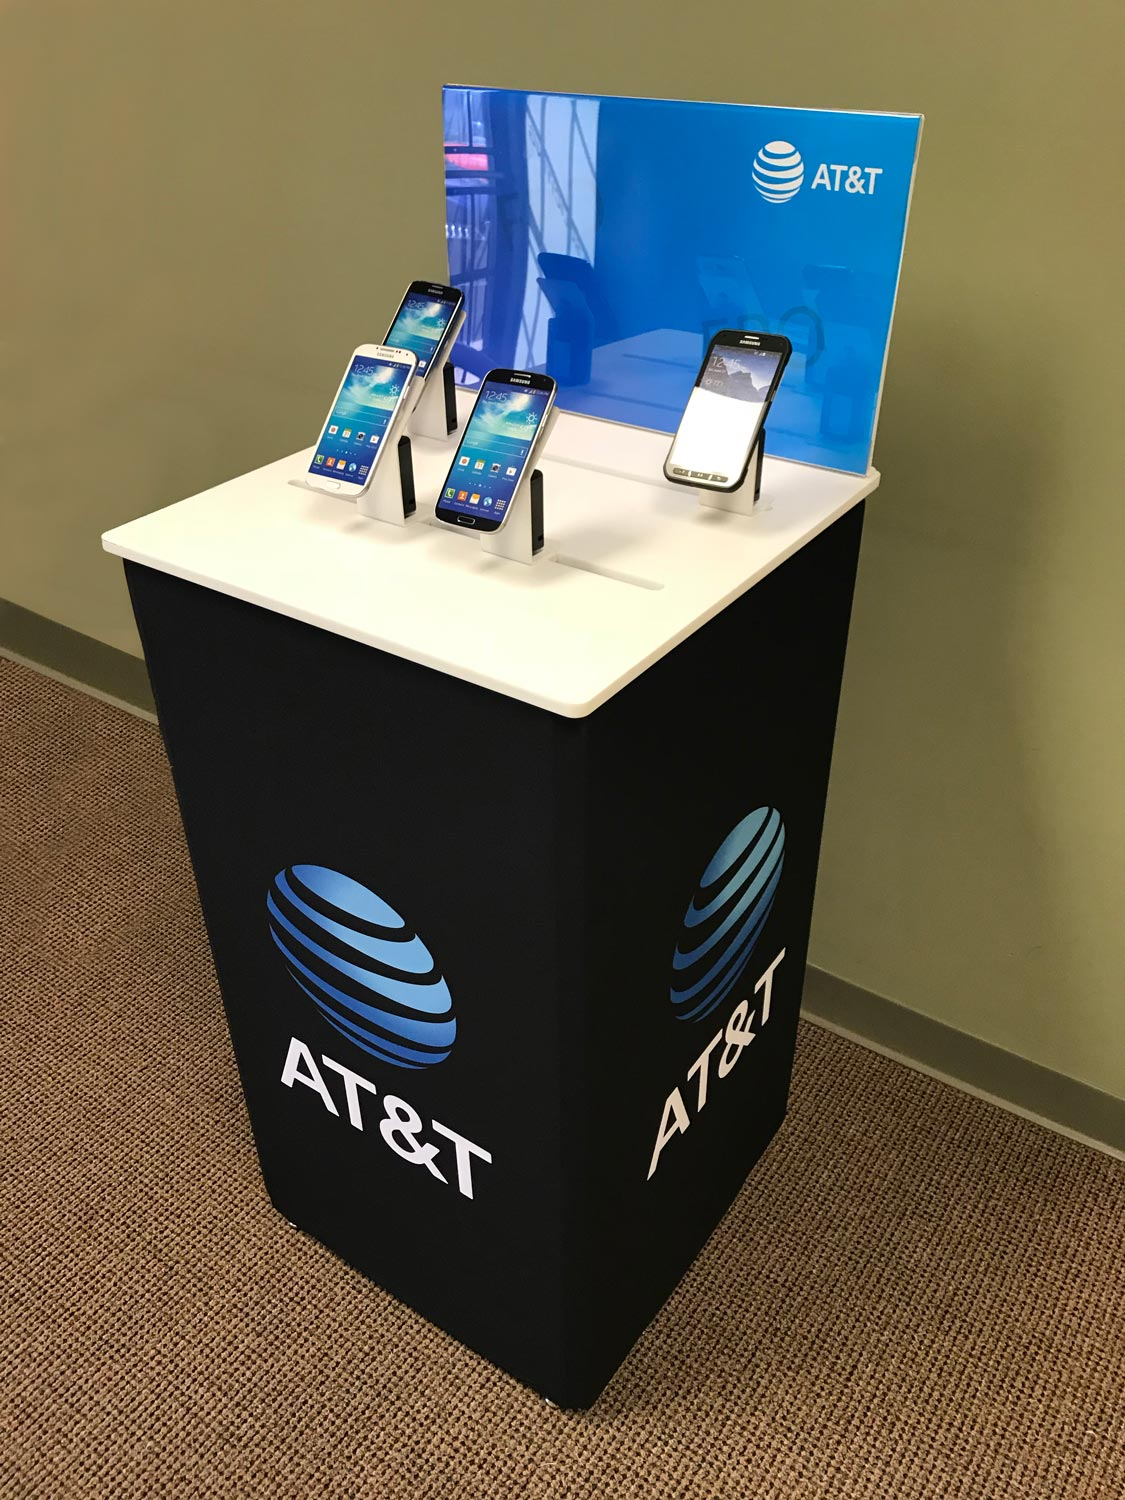 AT&T custom fabric stand